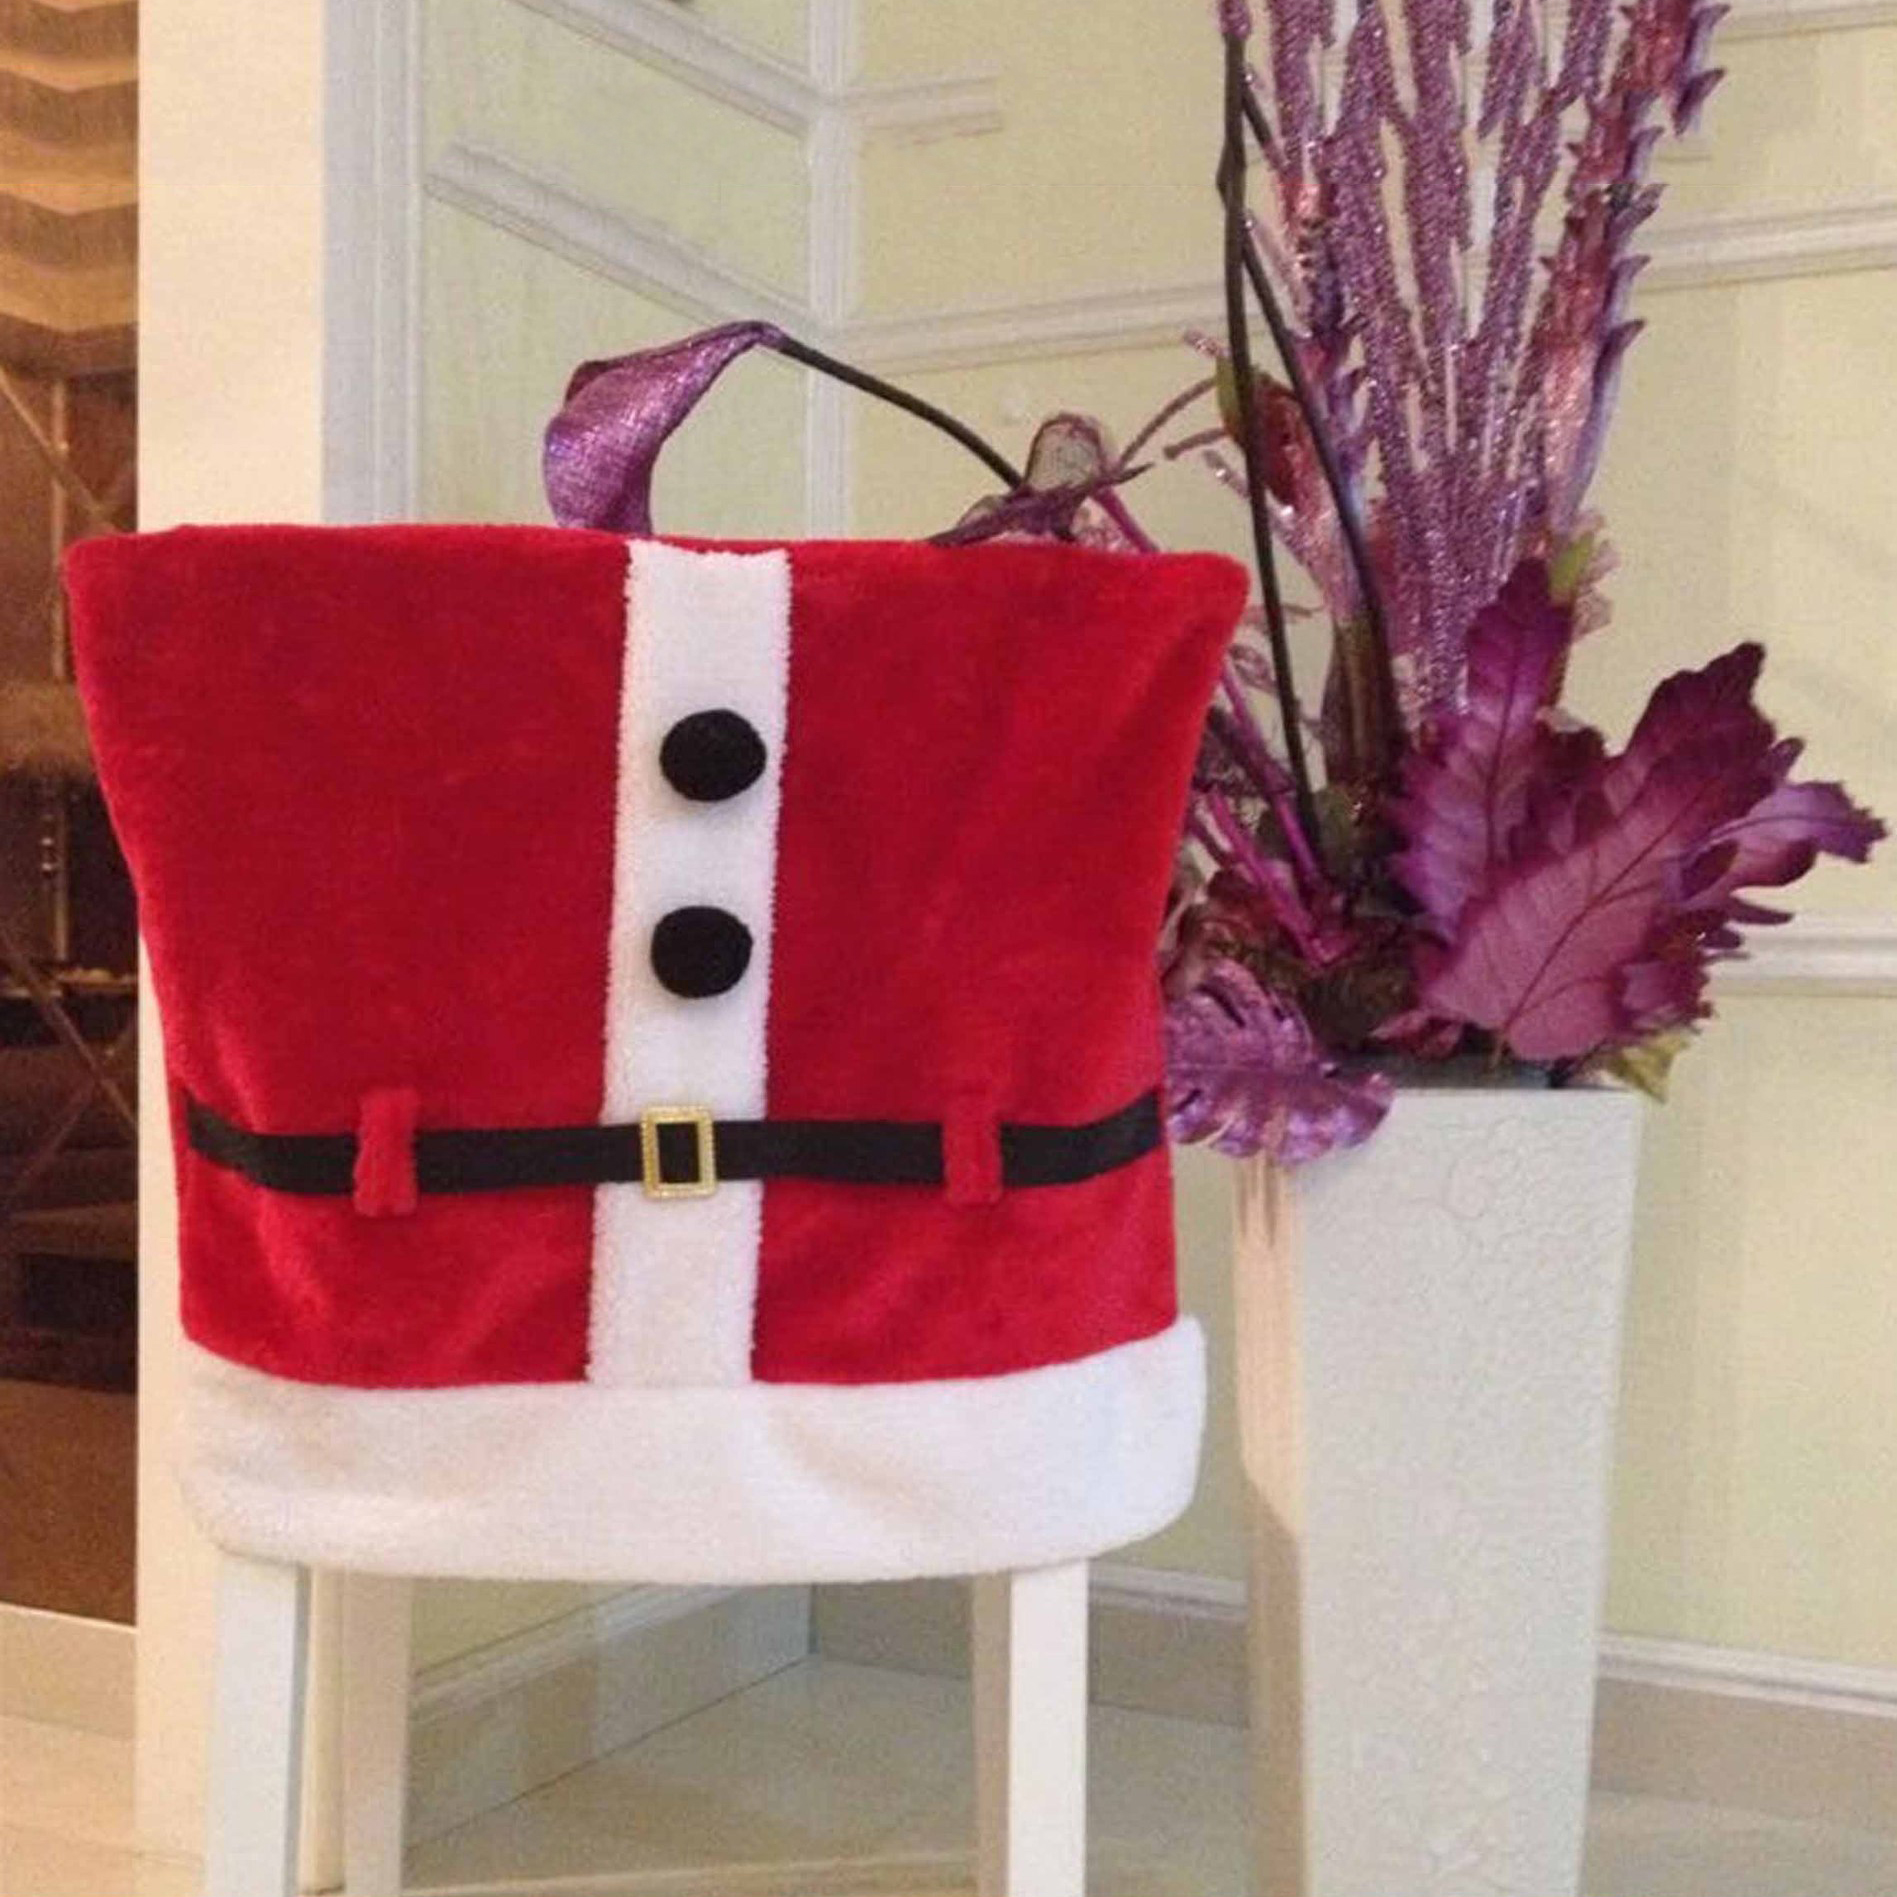 Kirklands Christmas Chair Covers Wooden Folding Chairs Santa With Belt Buckle Red Cover Seat Back